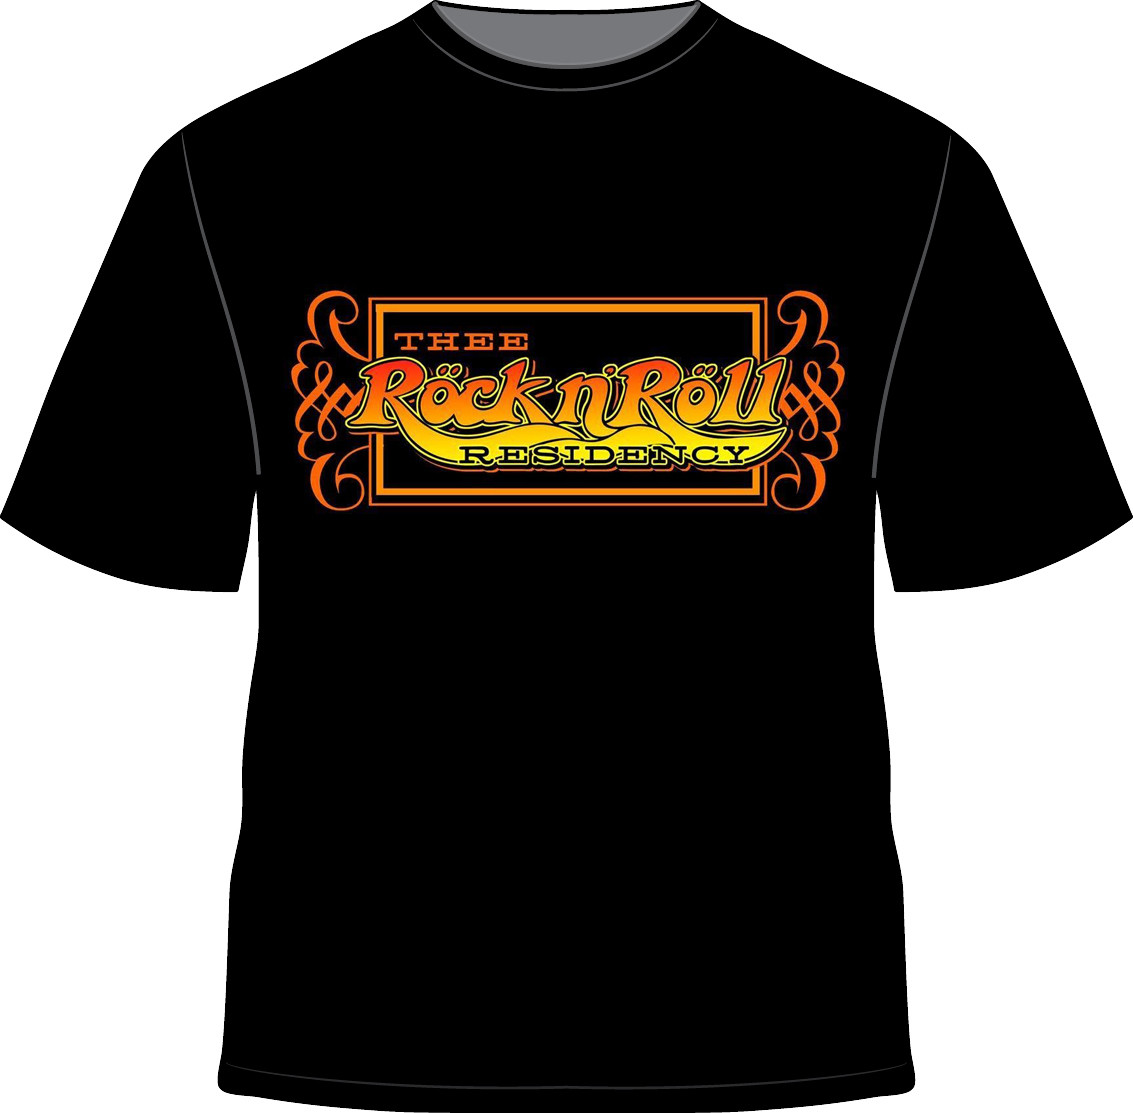 Thee Rock N' Roll Residency Official Logo T-Shirt